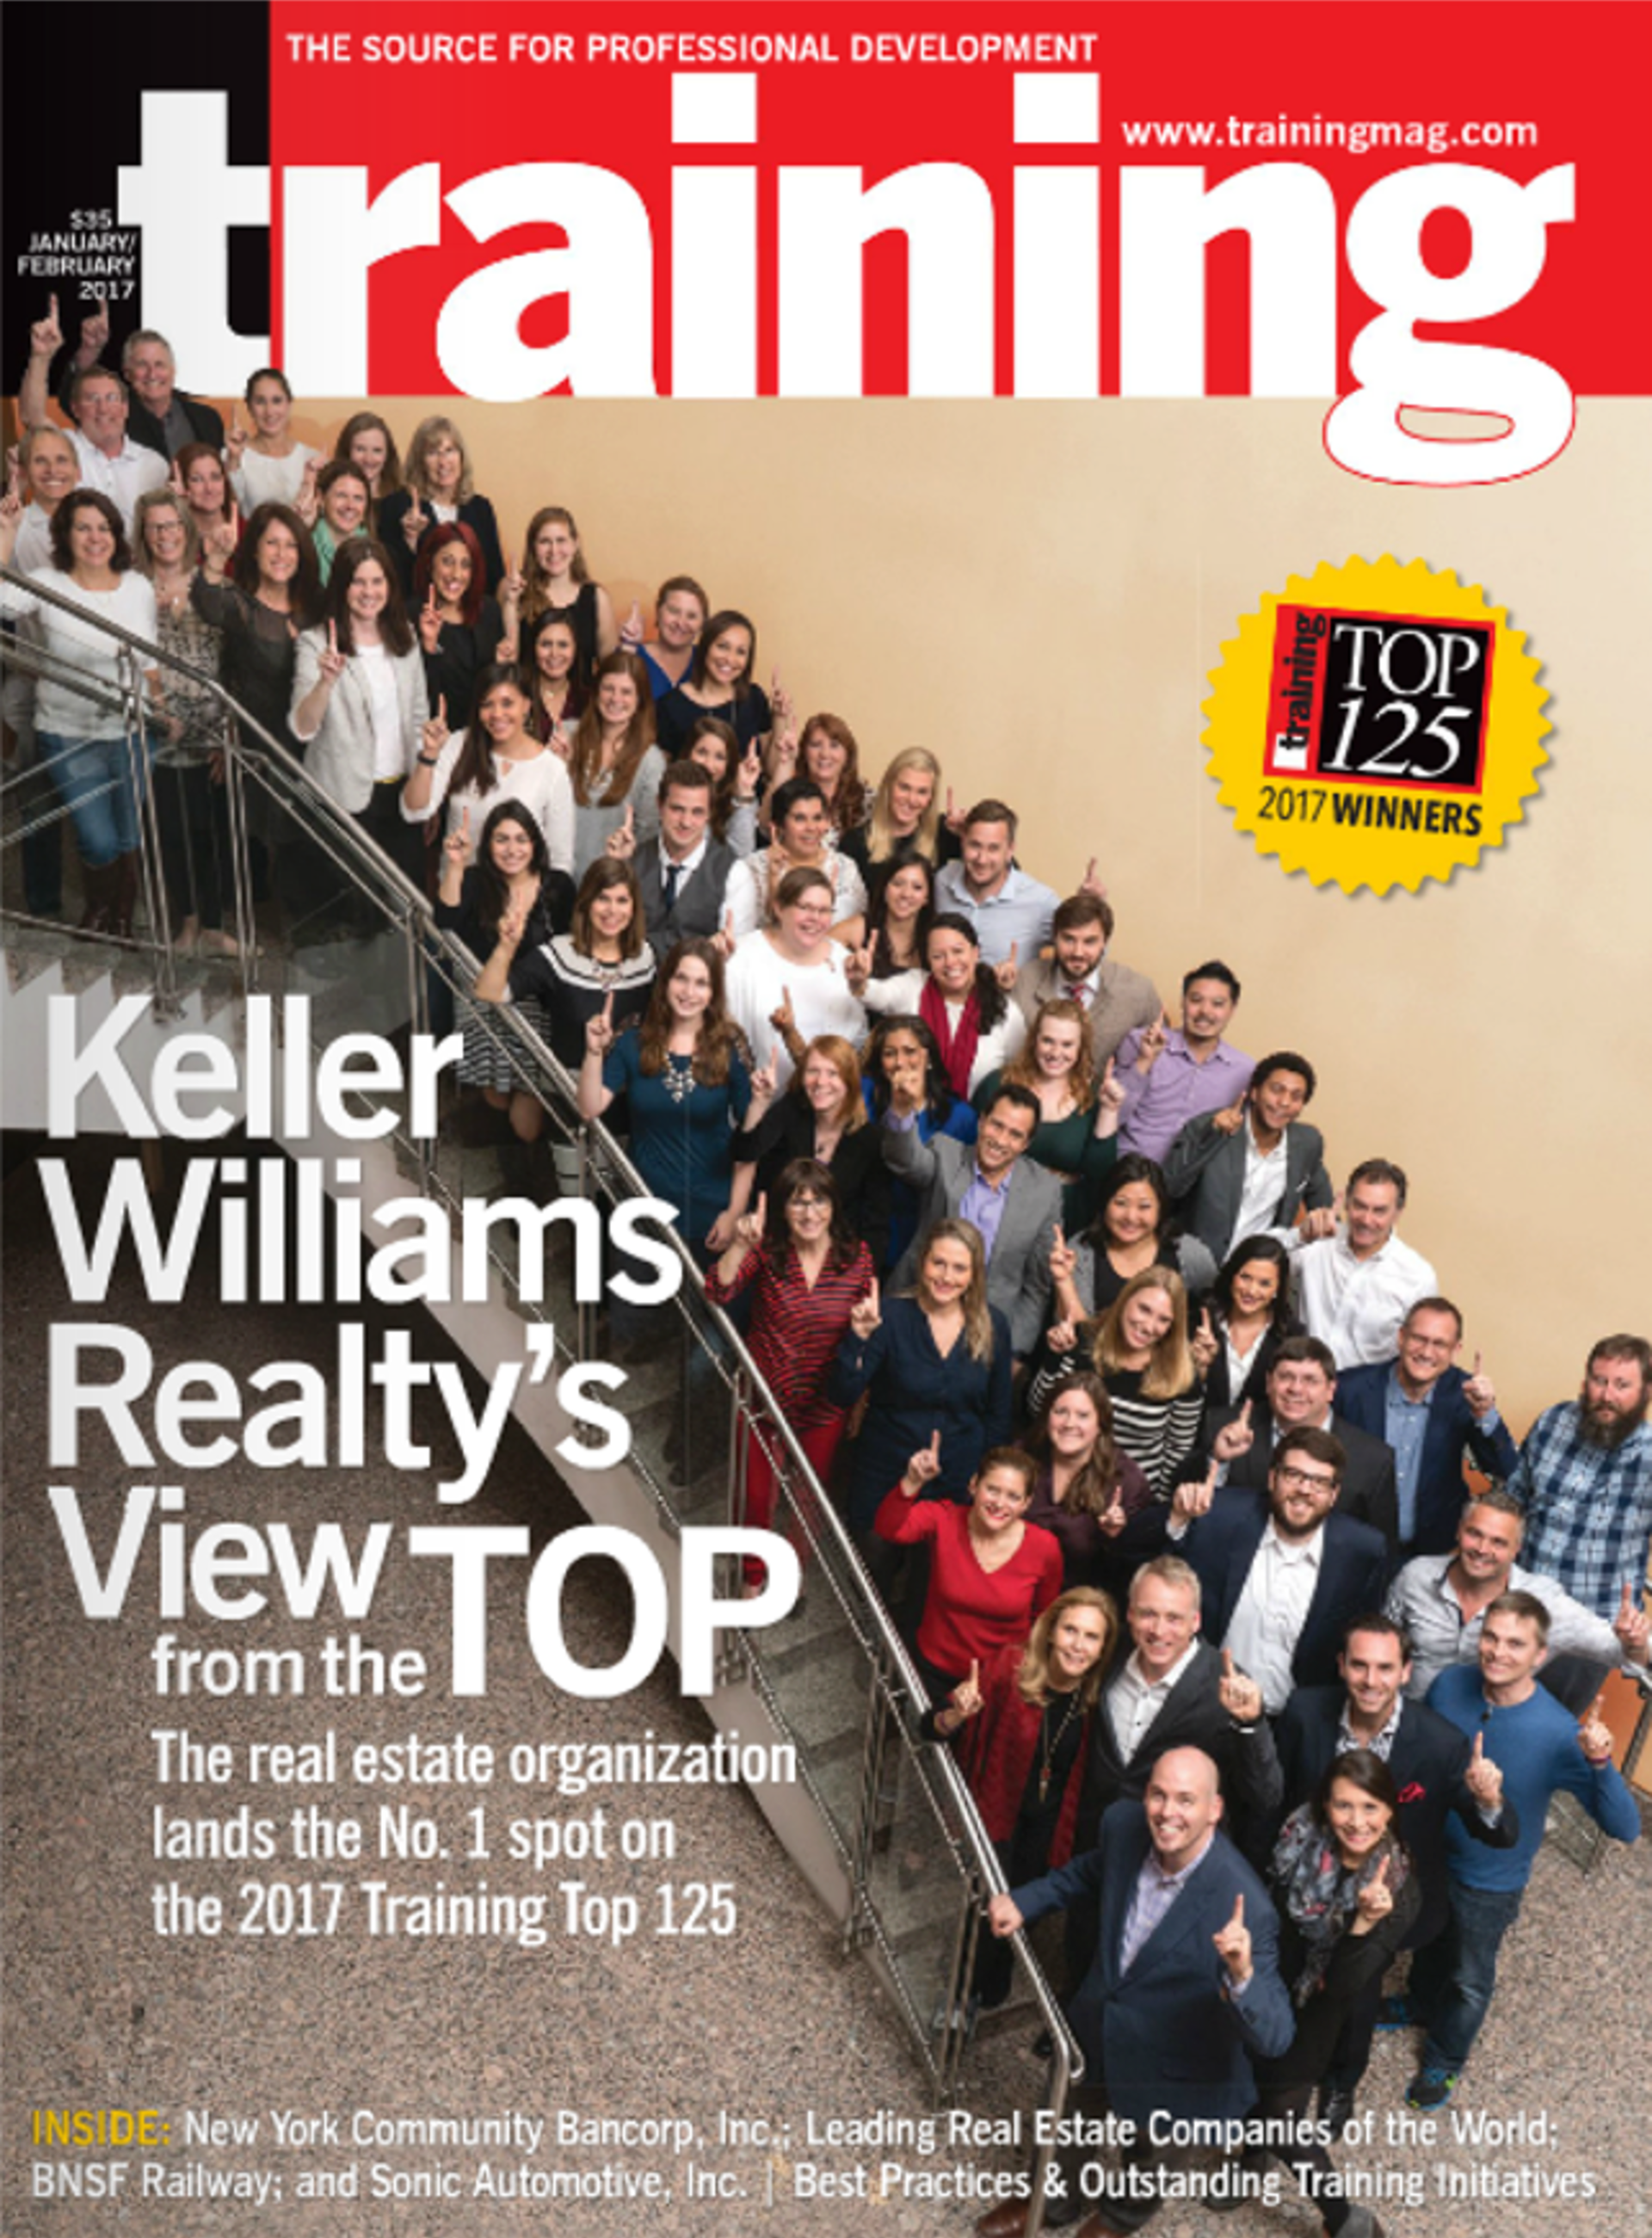 Keller Williams Named #1 Training Company for 2017 by Training Magazine